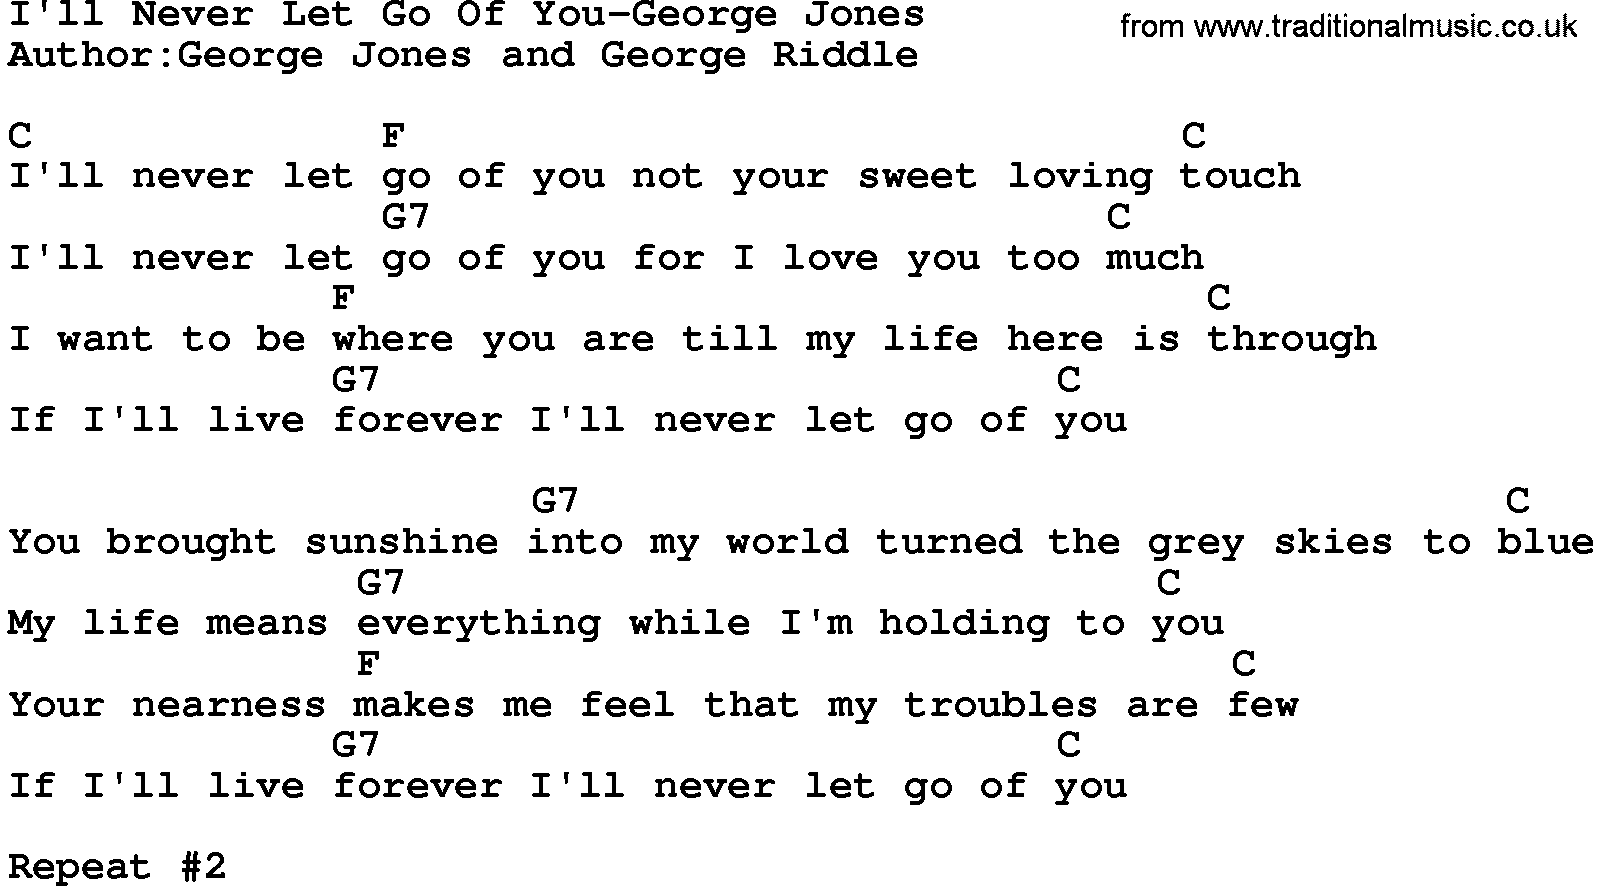 Country musicill never let go of you george jones lyrics and chords hexwebz Gallery